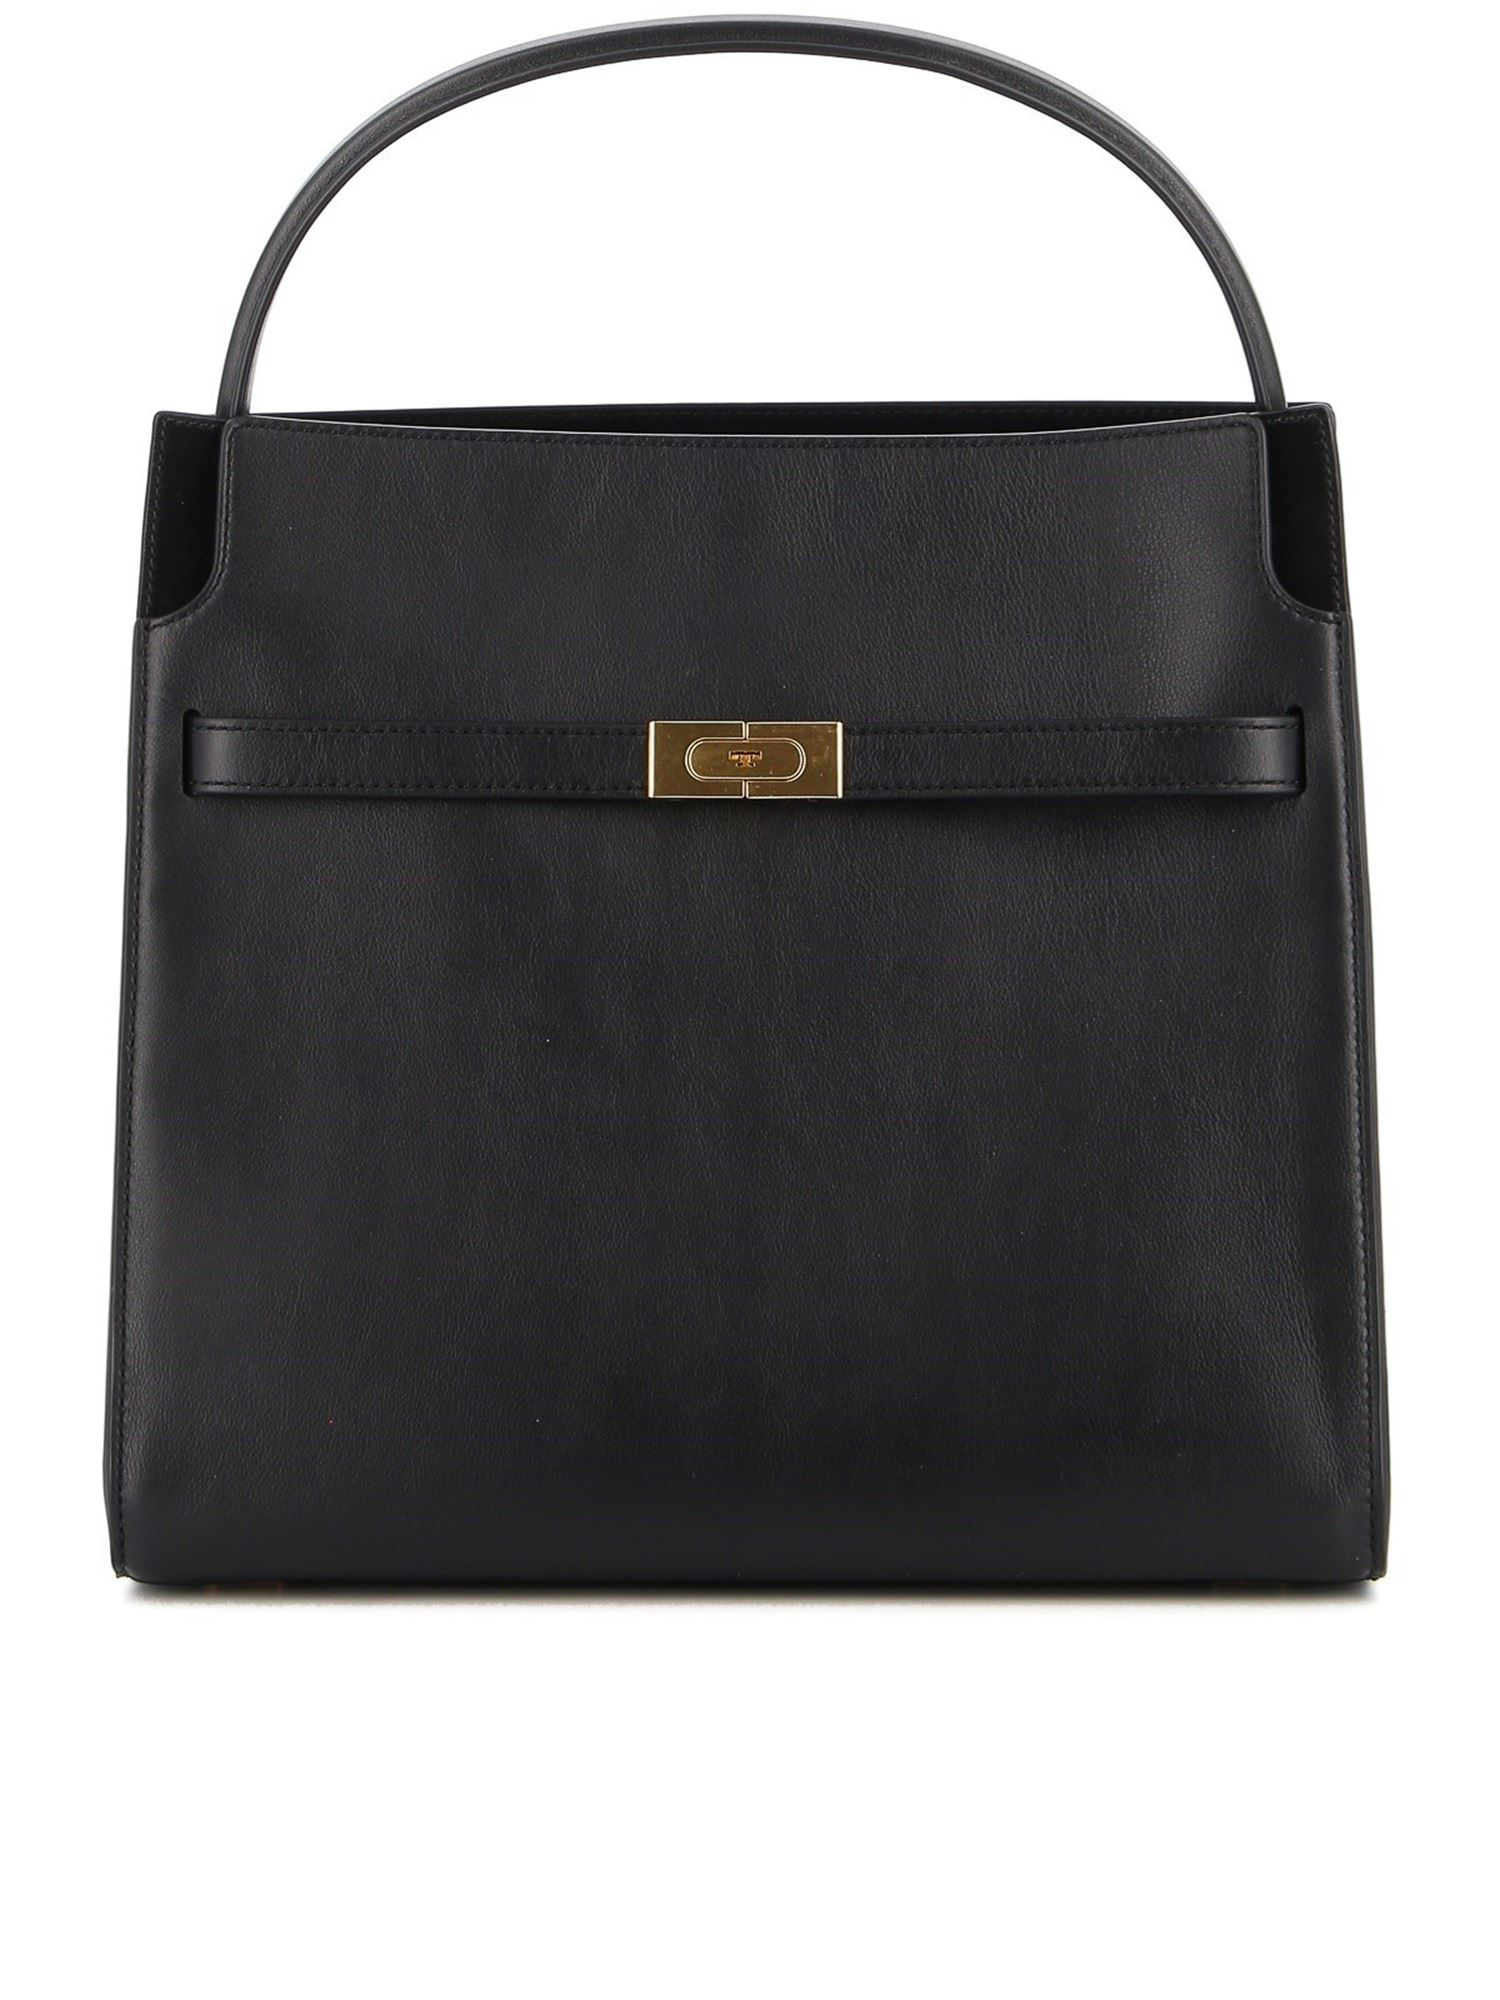 TORY BURCH DOUBLE LEE RADZIWILL SHOULDER BAG IN BLACK